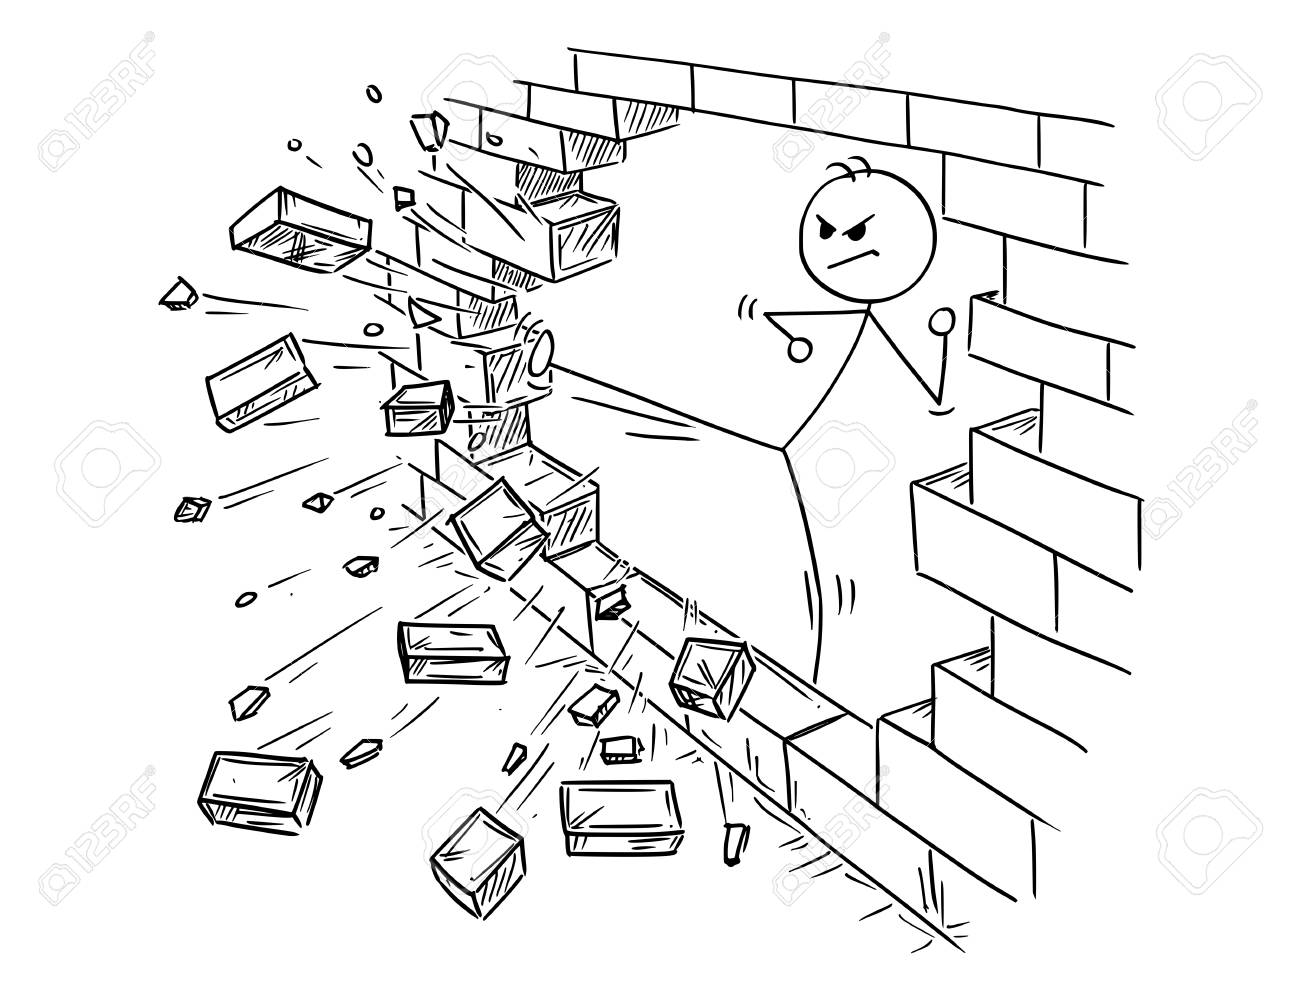 Conceptual illustration of businessman doing kung-fu or karate kick to destroy the brick wall. - 96170147